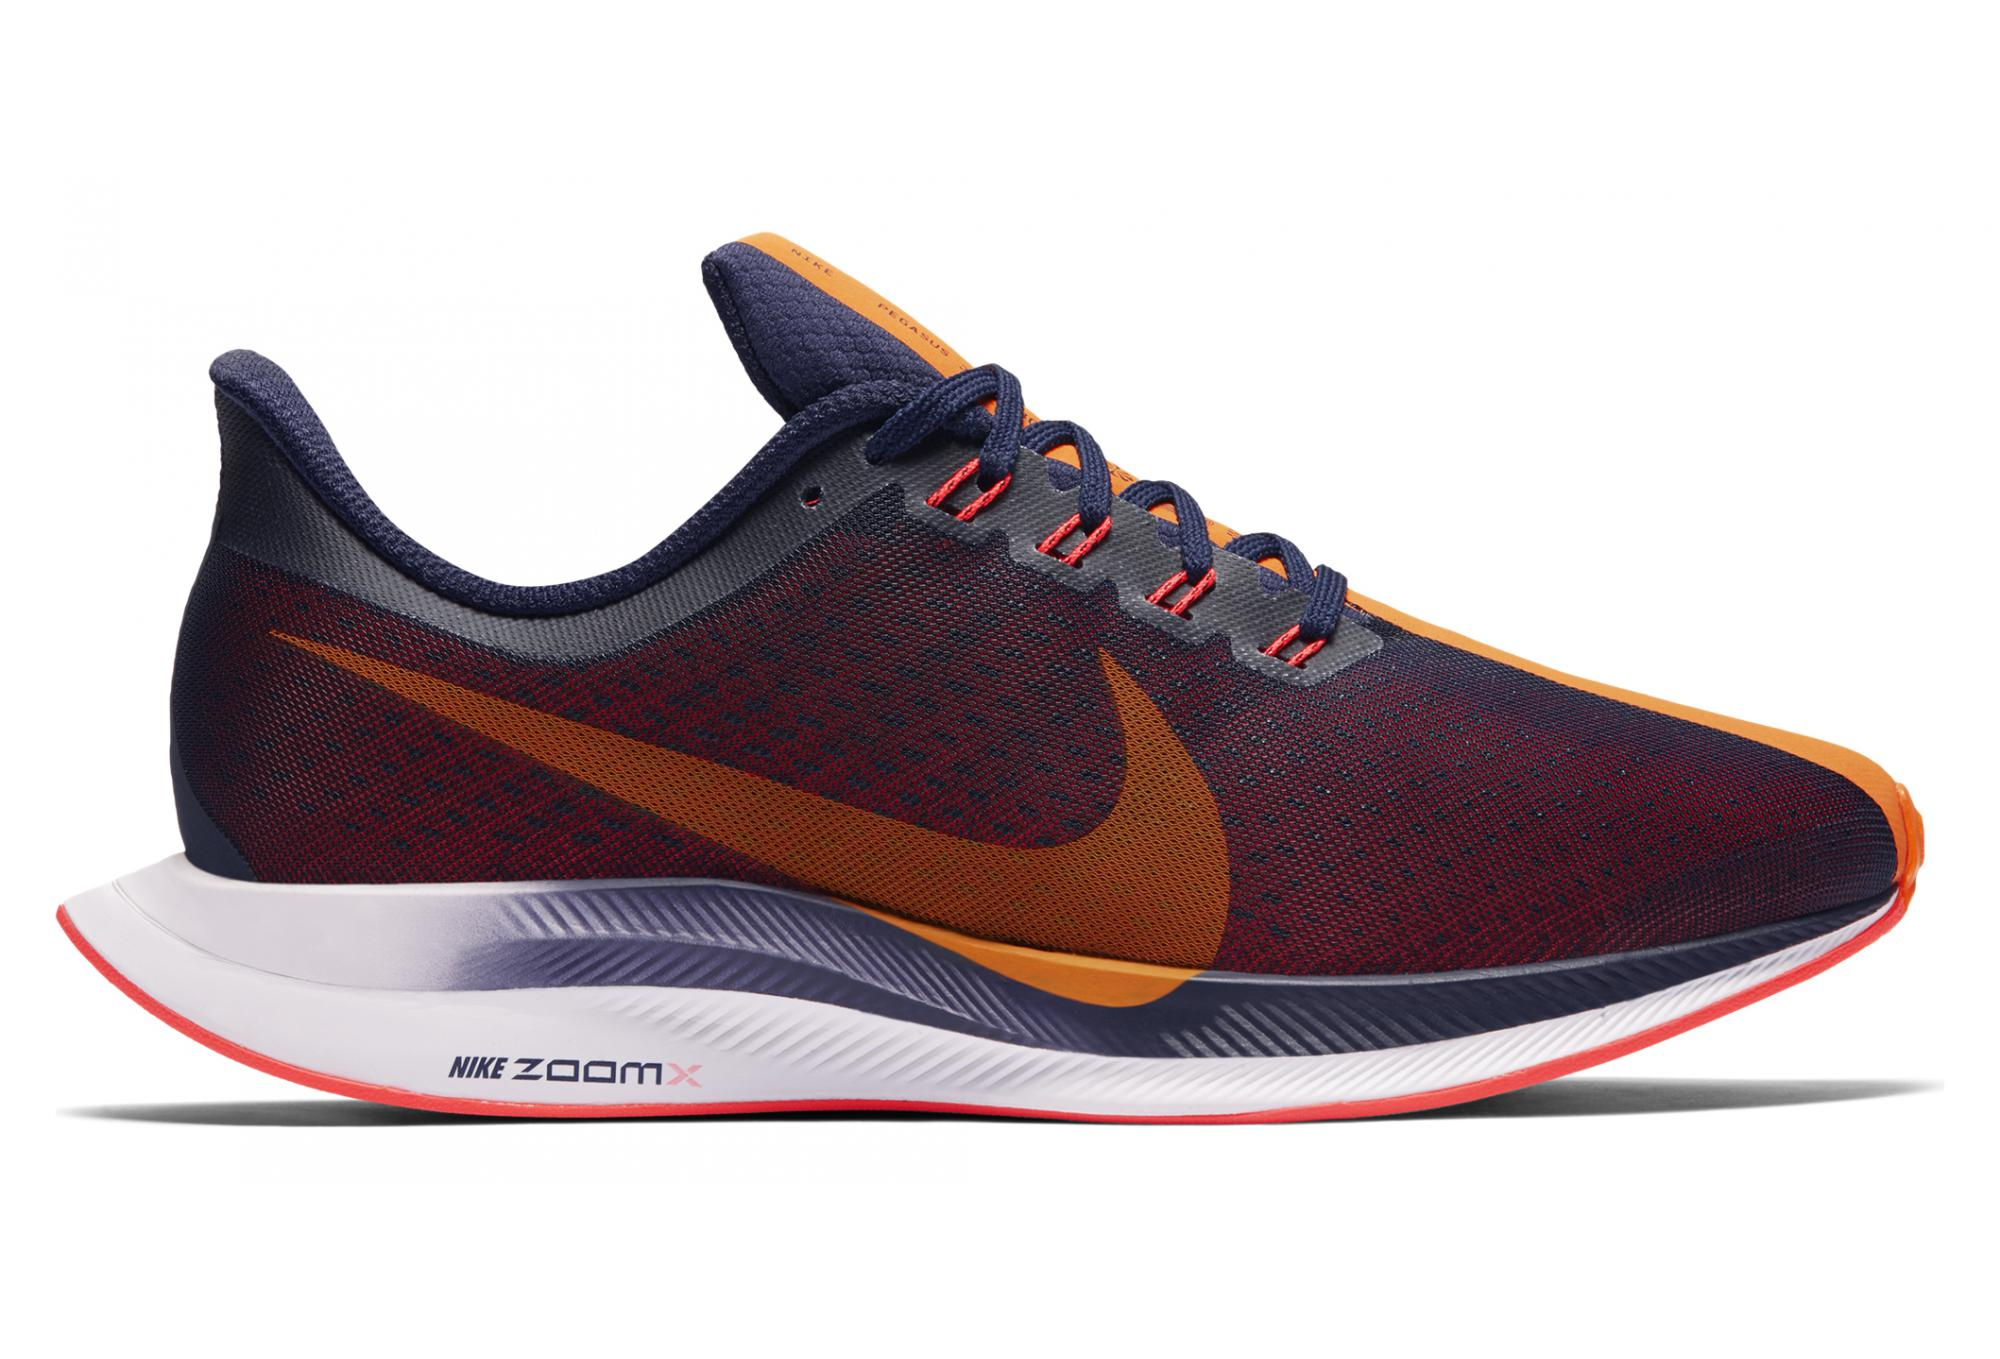 reputable site 3eaed 57c59 Chaussures de Running Femme Nike Zoom Pegasus Turbo Bleu   Orange